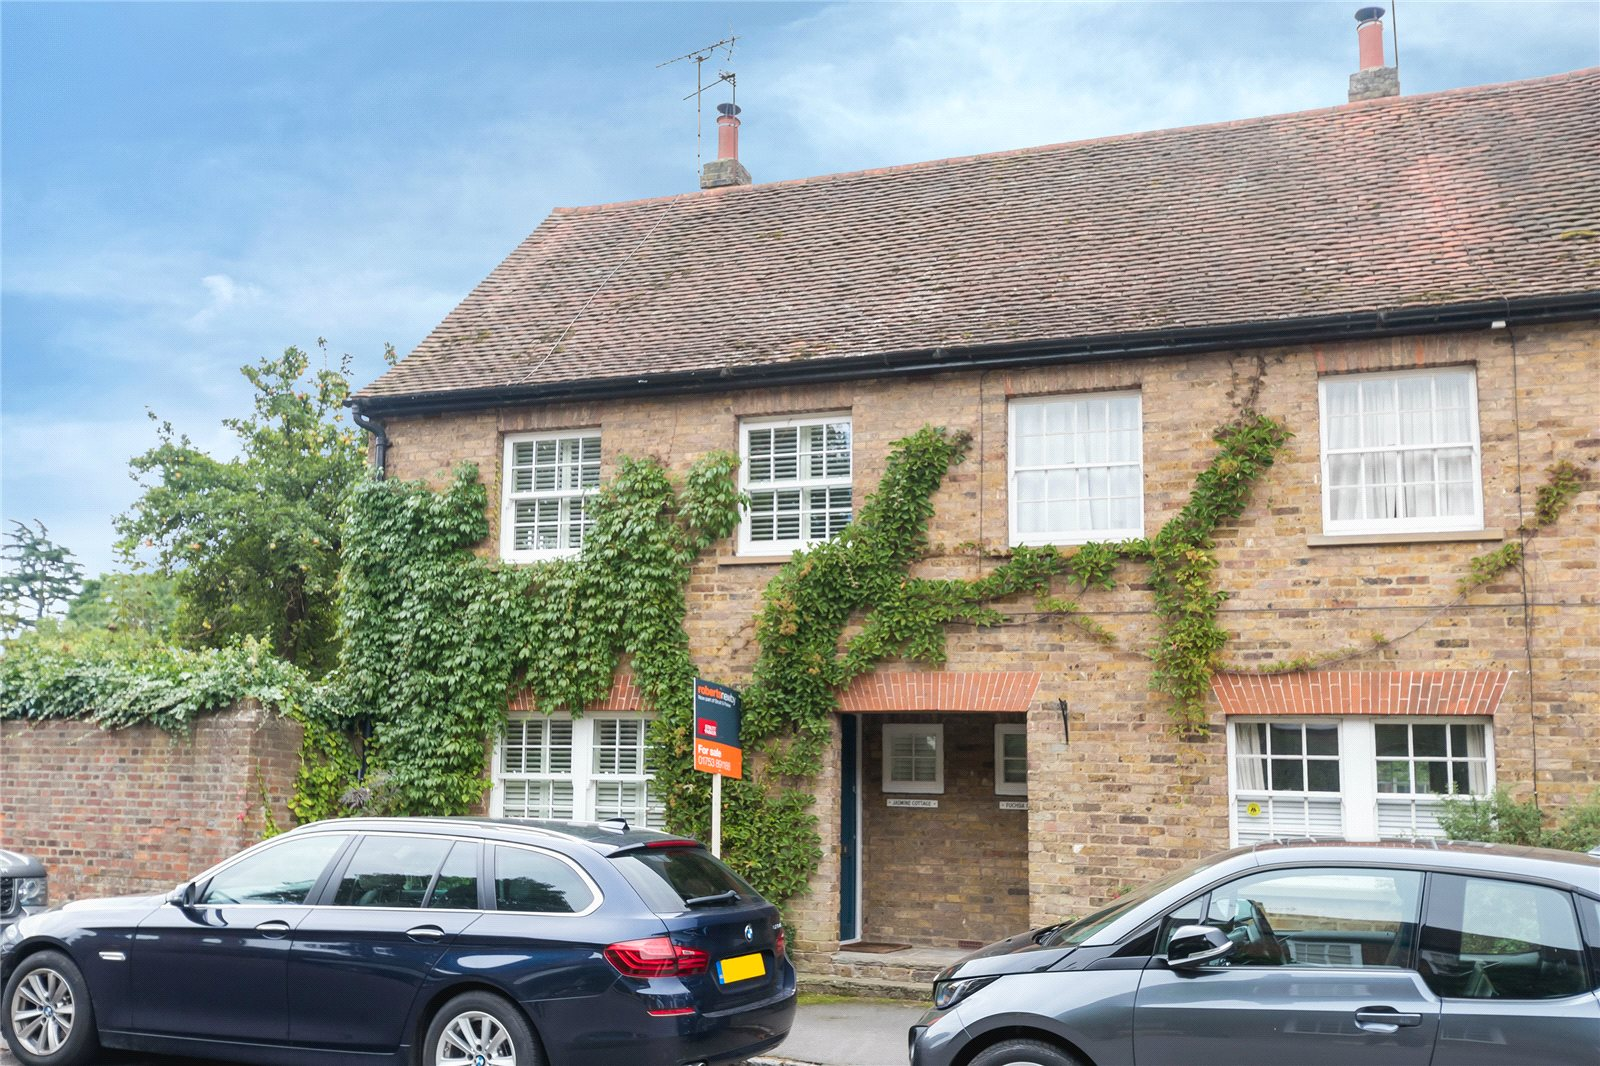 Single Family Home for Sale at Village Road, Denham Village, Buckinghamshire, UB9 Buckinghamshire, England